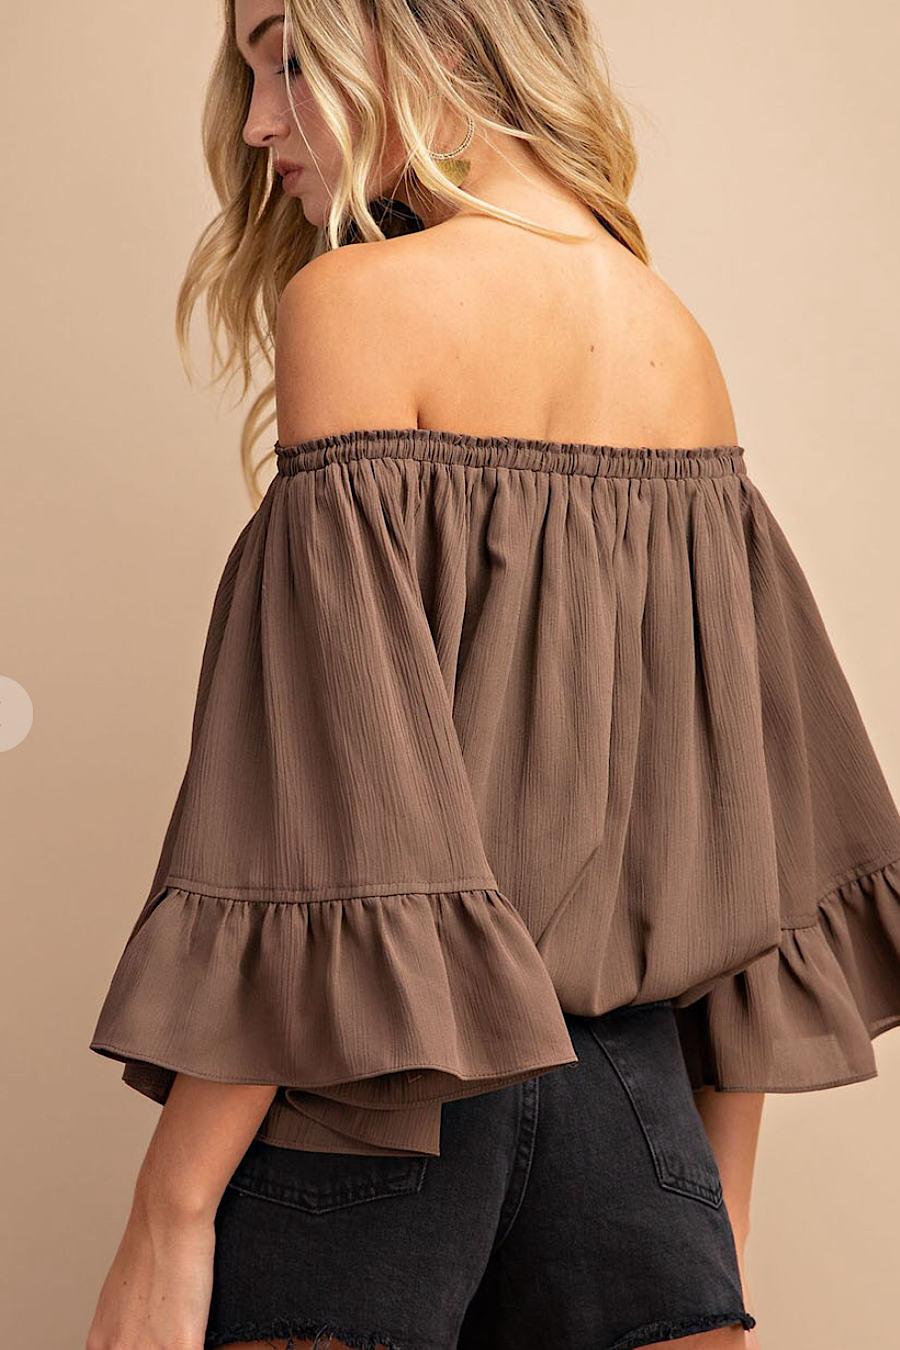 Montelucia Off the Shoulder Blouse in Cocoa